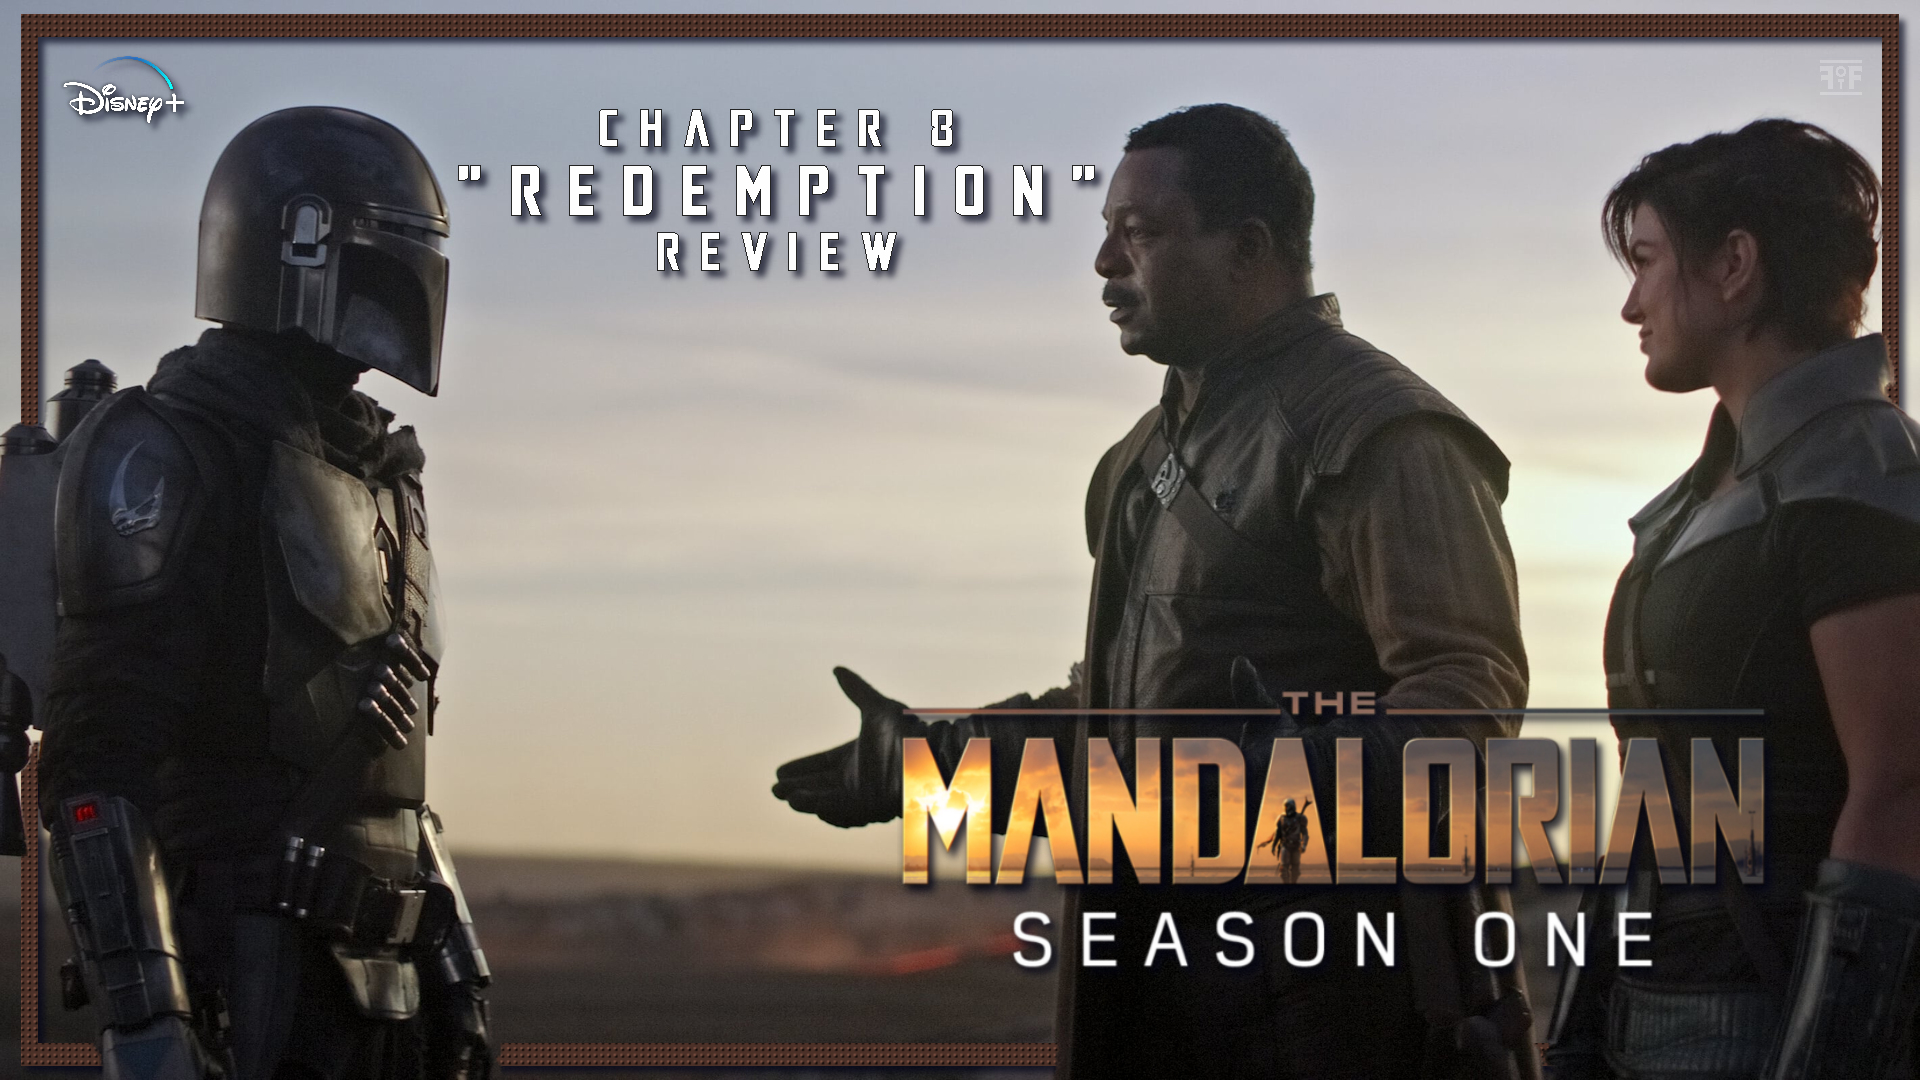 The Mandalorian Chapter 8 'Redemption' Review